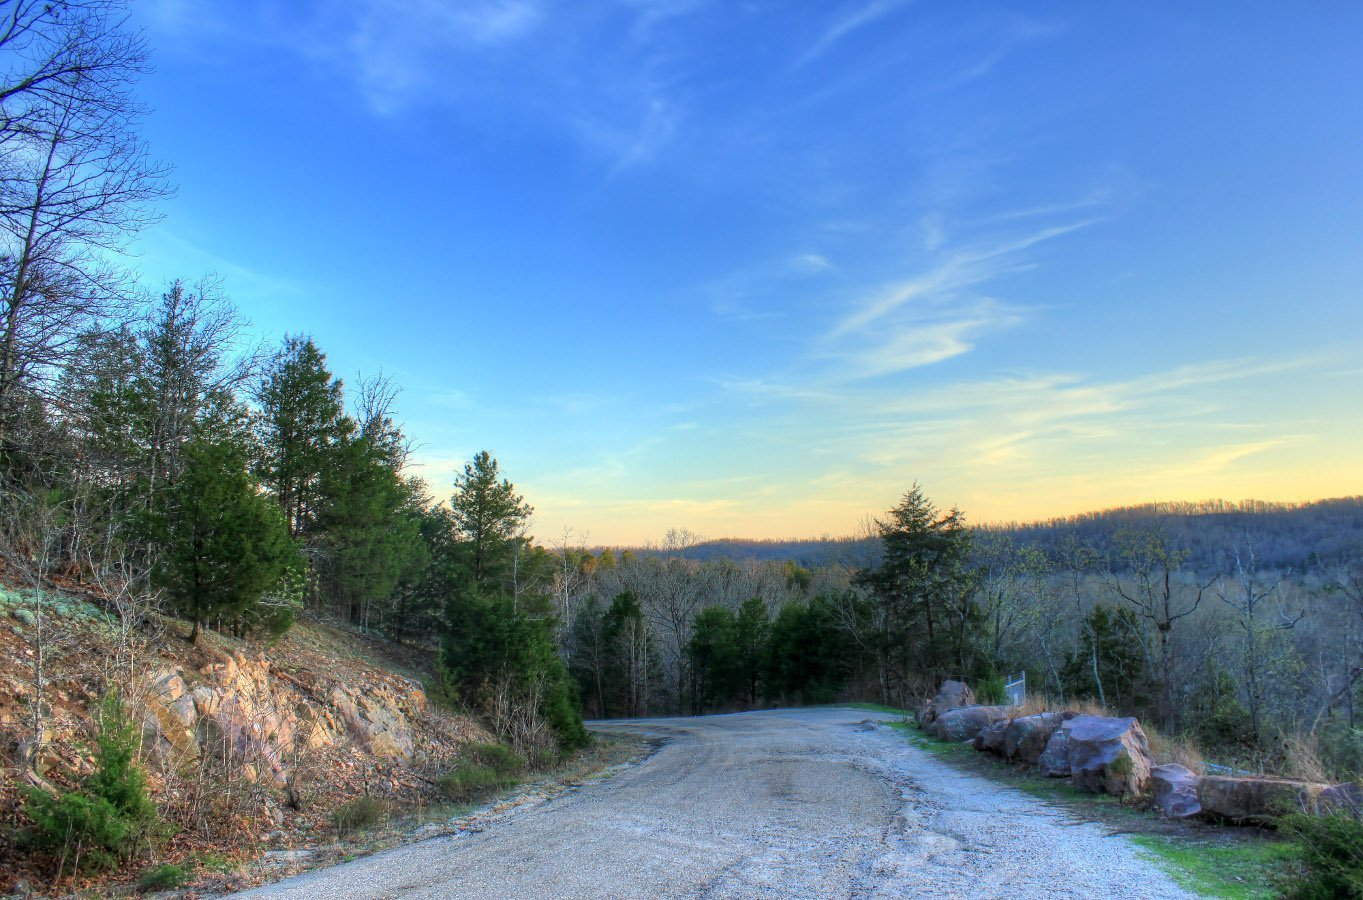 Dusk in the hills of a forest park in the state of Missouri, known as the Show Me State.